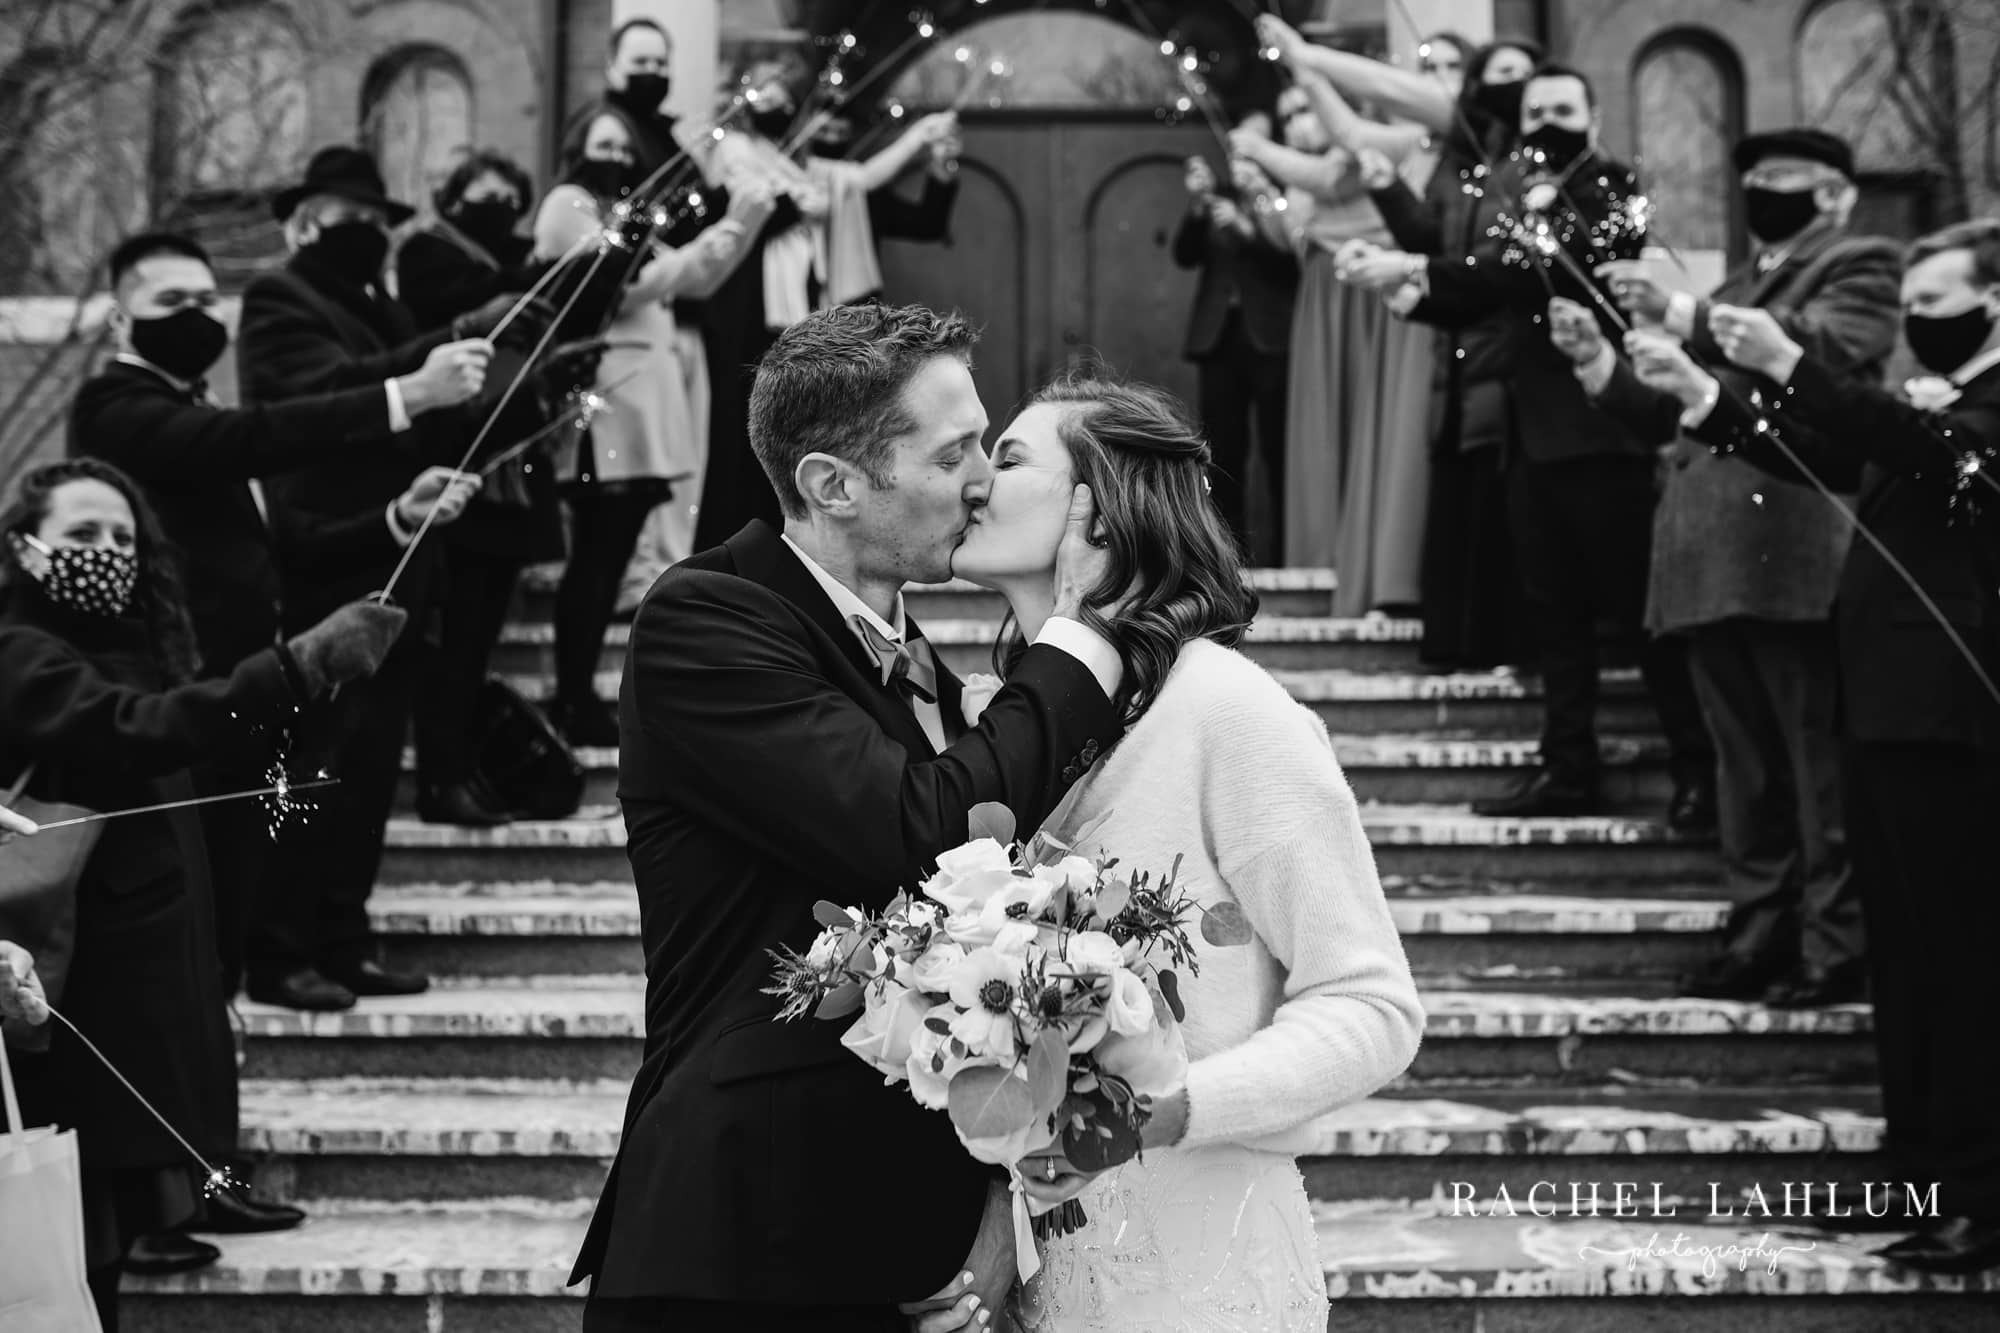 Bride and groom kiss after Northeast Minneapolis wedding at St. Mary's Orthodox Cathedral.